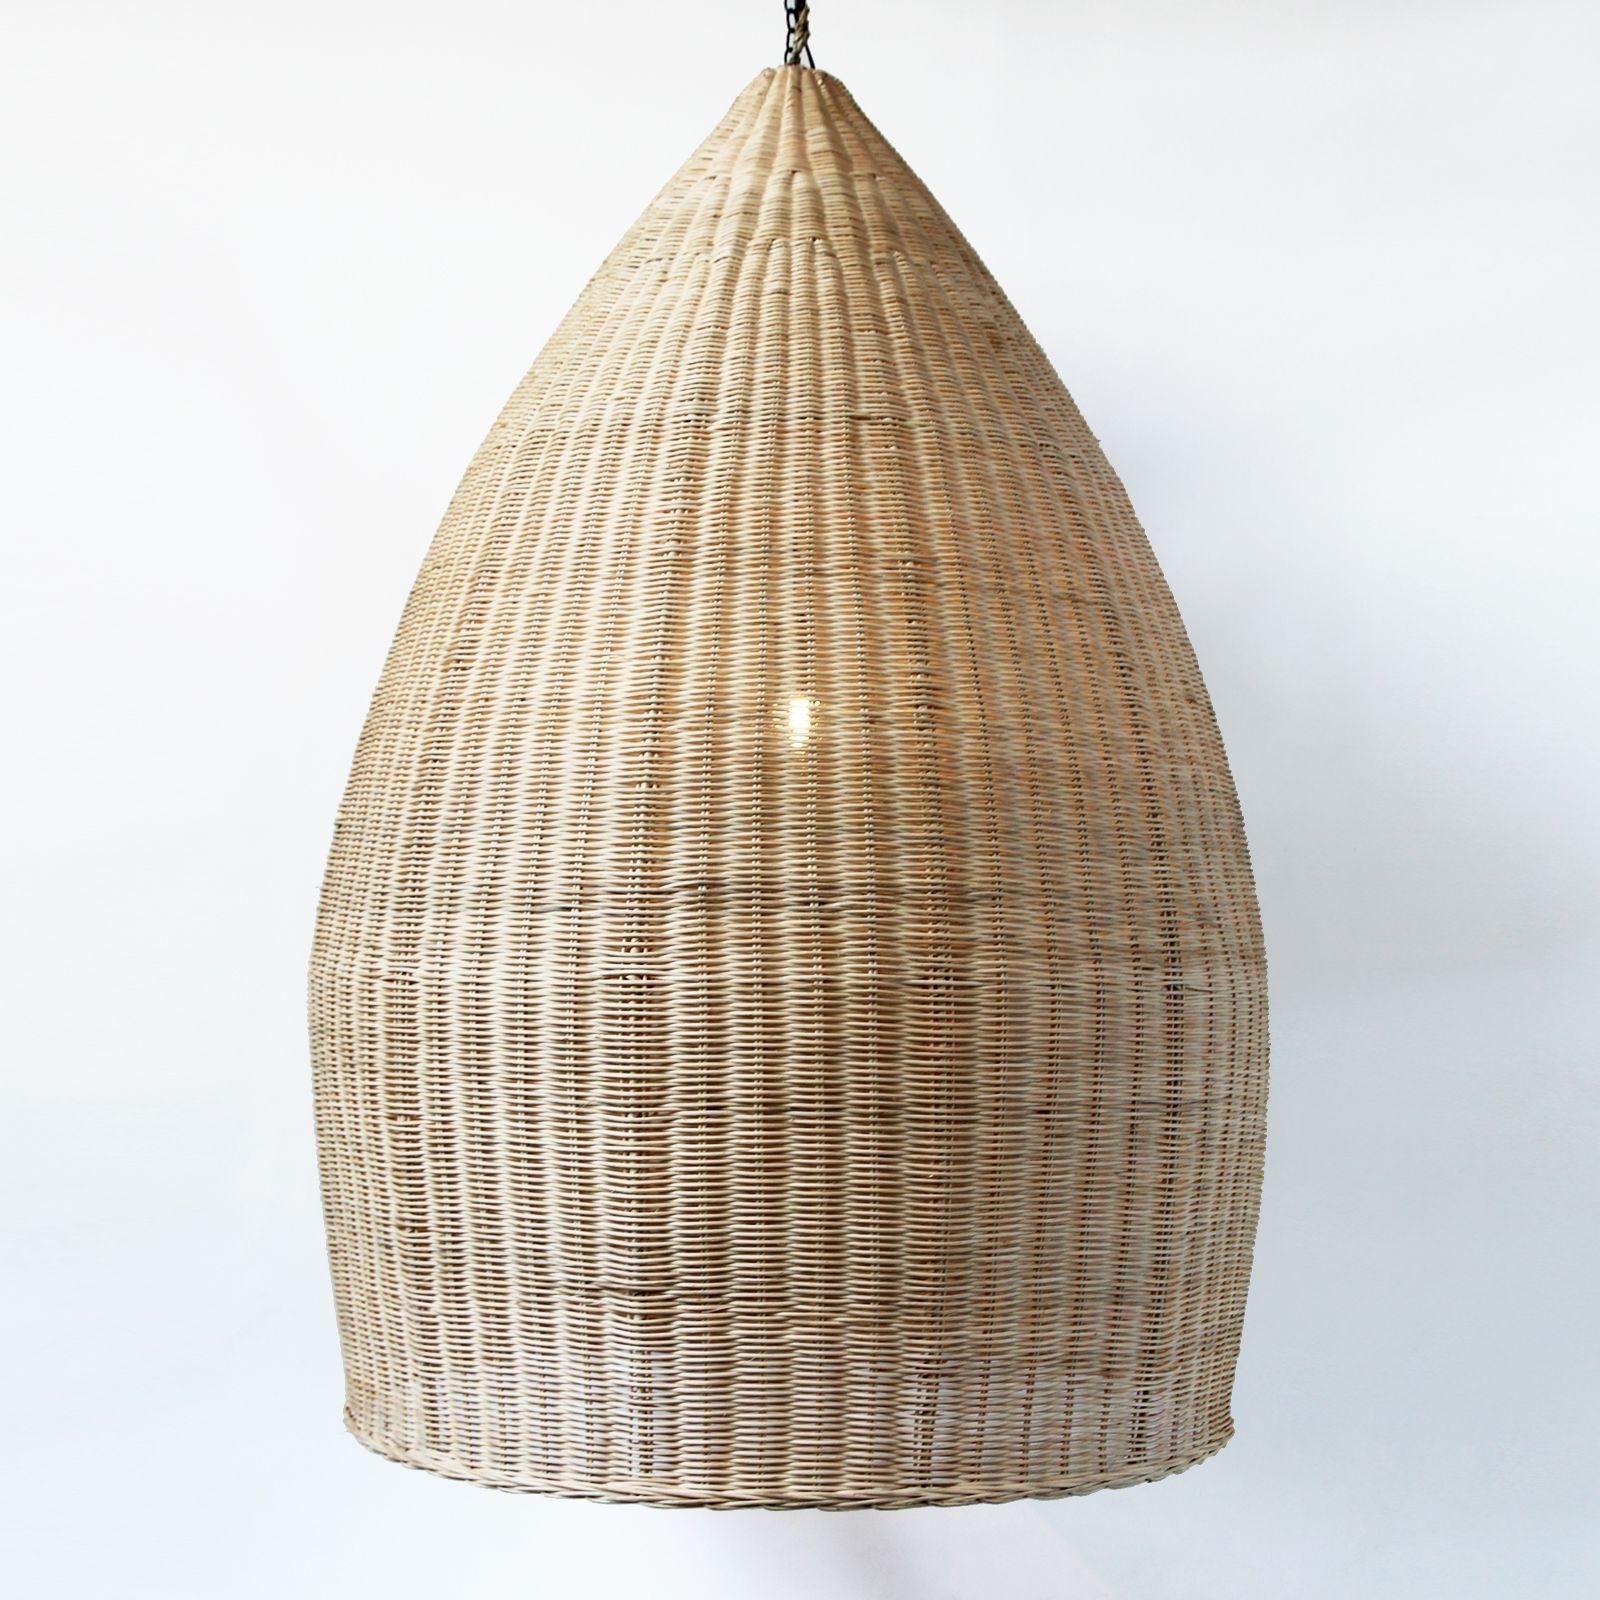 Extra Large Hand Woven Pod Lantern In Natural Raw Rattan. Moroccan Throughout Well Known Outdoor Rattan Hanging Lights (Gallery 12 of 20)